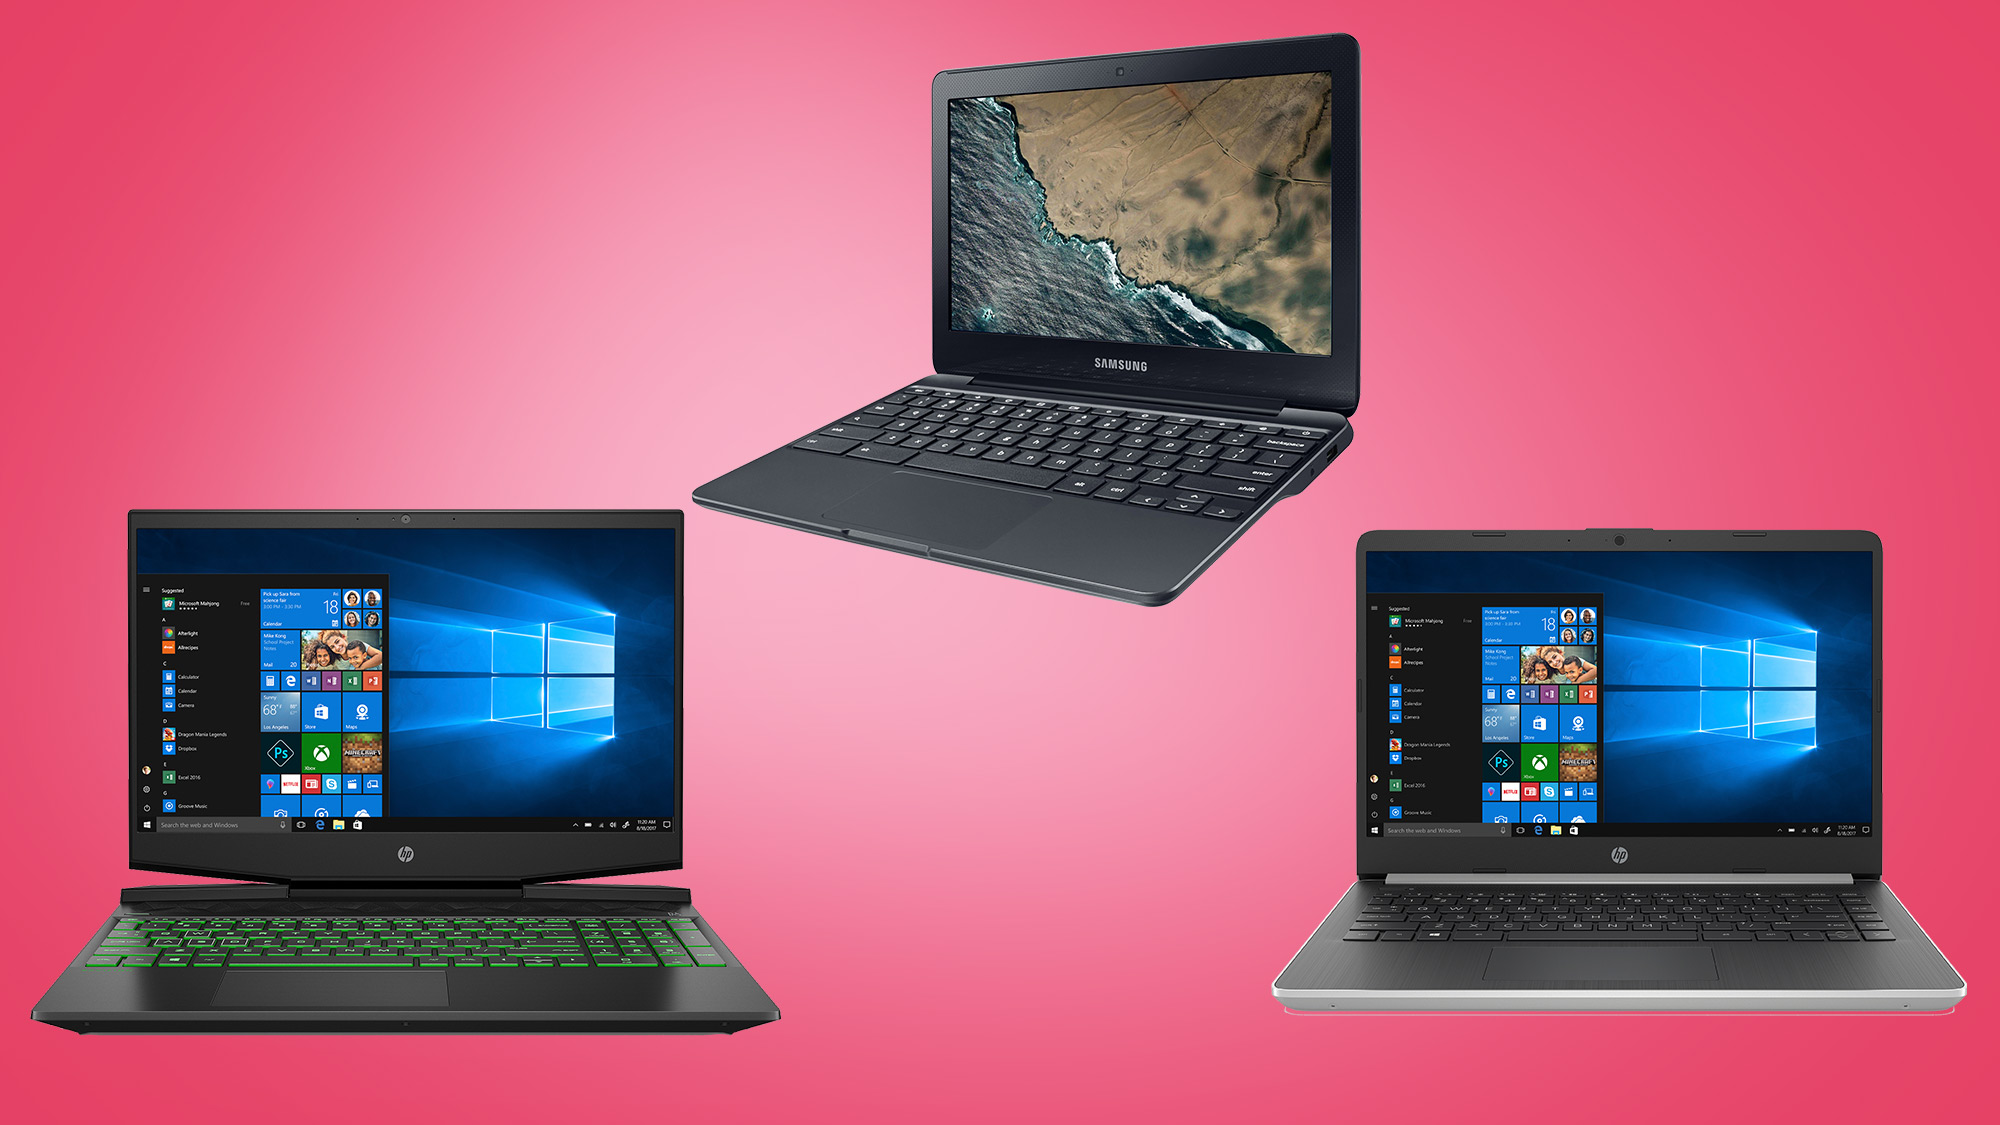 Need A Cheap Laptop This Walmart Laptop Sale Should Be Your First Stop Techradar